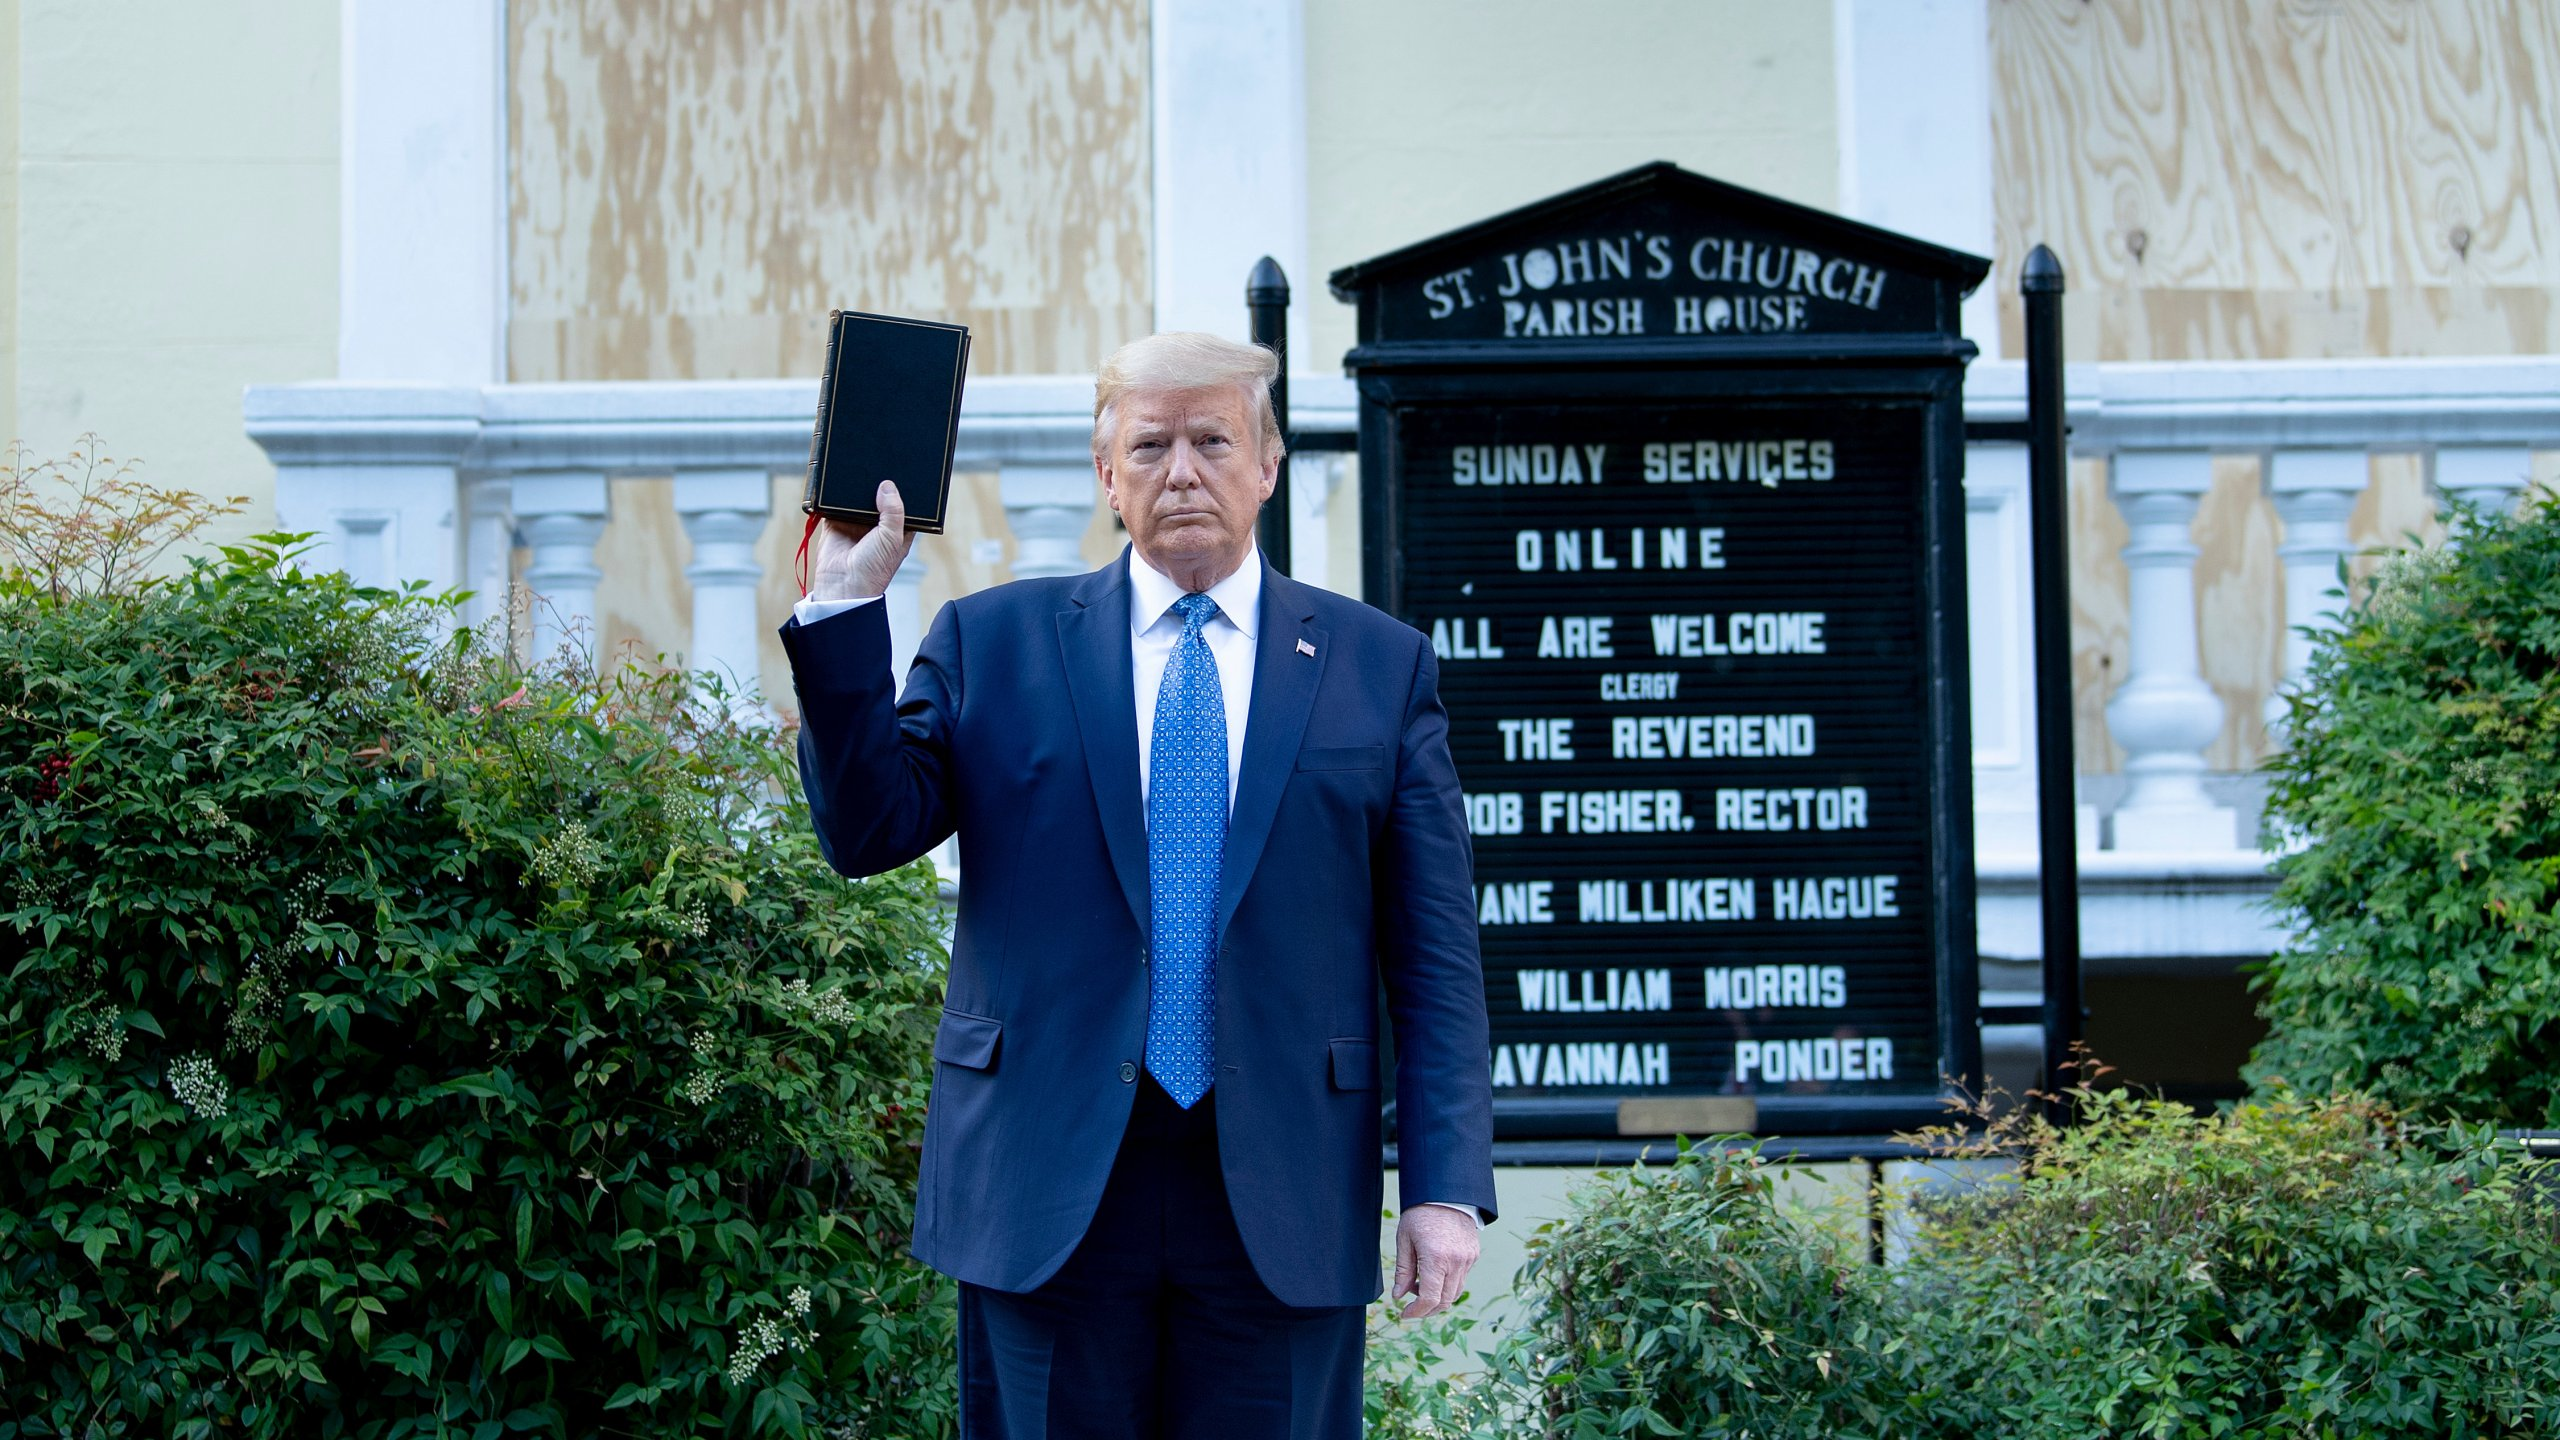 President Donald Trump holds a Bible while visiting St. John's Church across from the White House after the area was cleared of people protesting the death of George Floyd June 1, 2020, in Washington, D.C.(BRENDAN SMIALOWSKI/AFP via Getty Images)